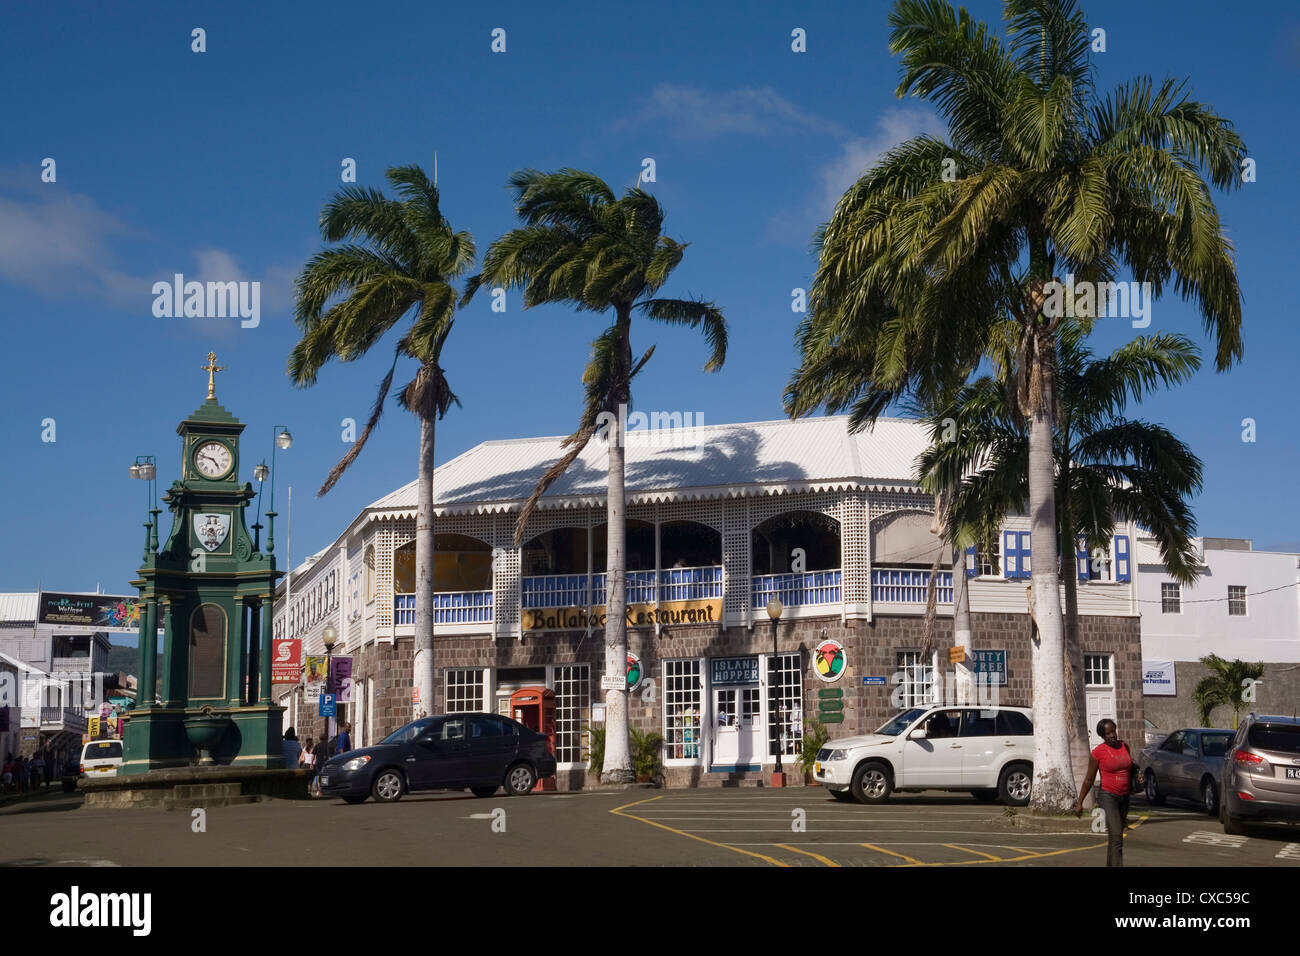 The Circus, Basseterre, St. Kitts and Nevis, West Indies, Caribbean, Central America - Stock Image